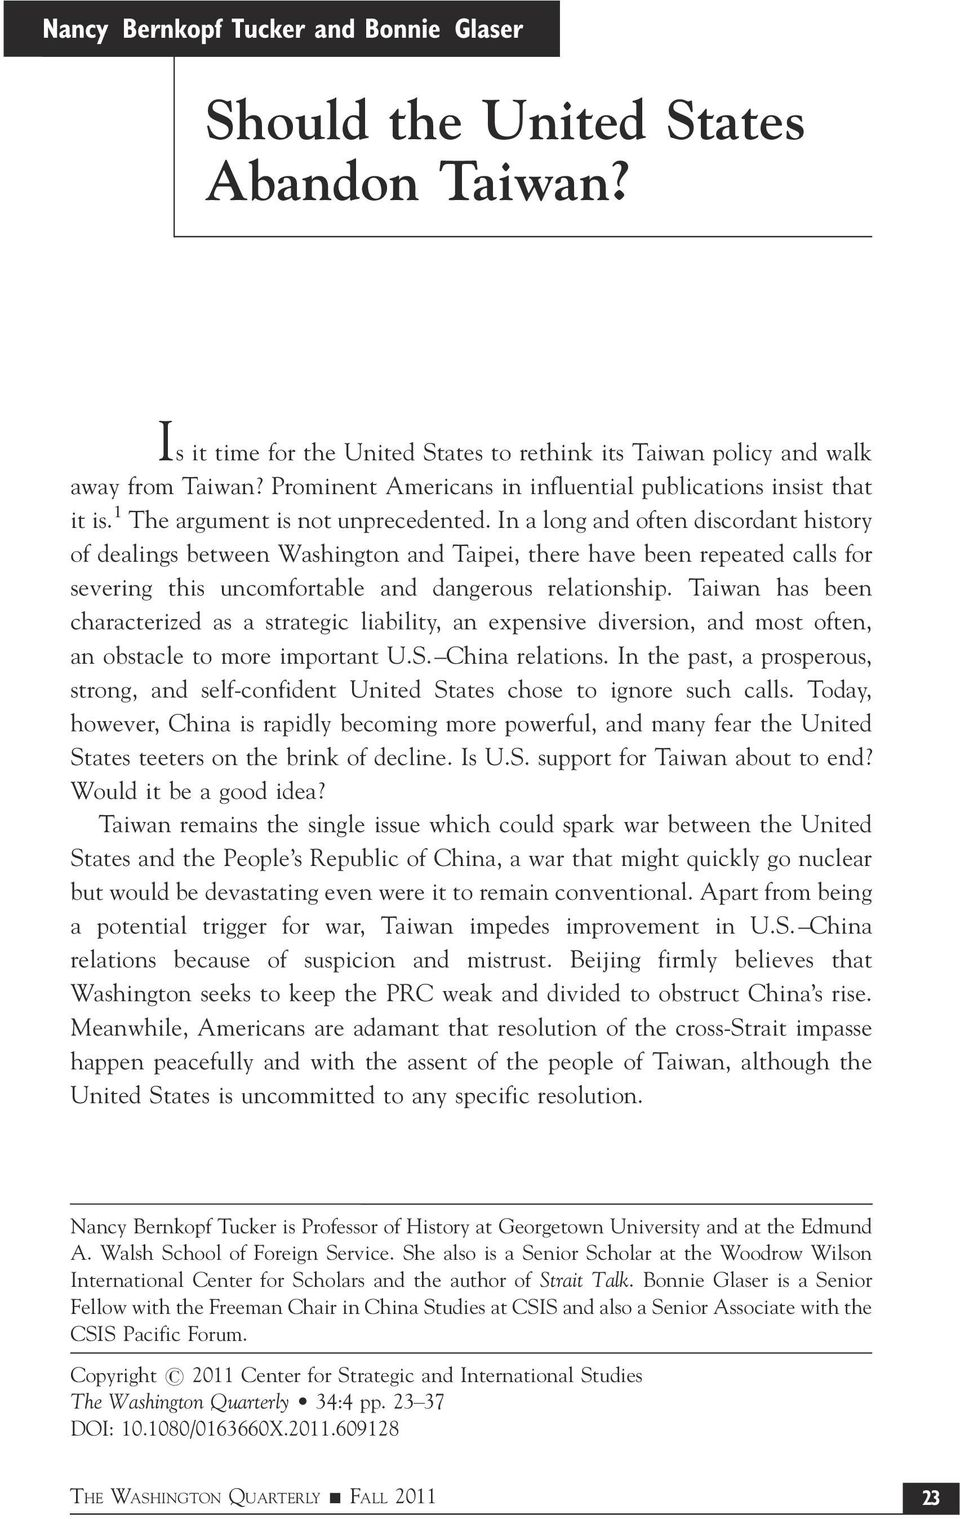 In a long and often discordant history of dealings between Washington and Taipei, there have been repeated calls for severing this uncomfortable and dangerous relationship.